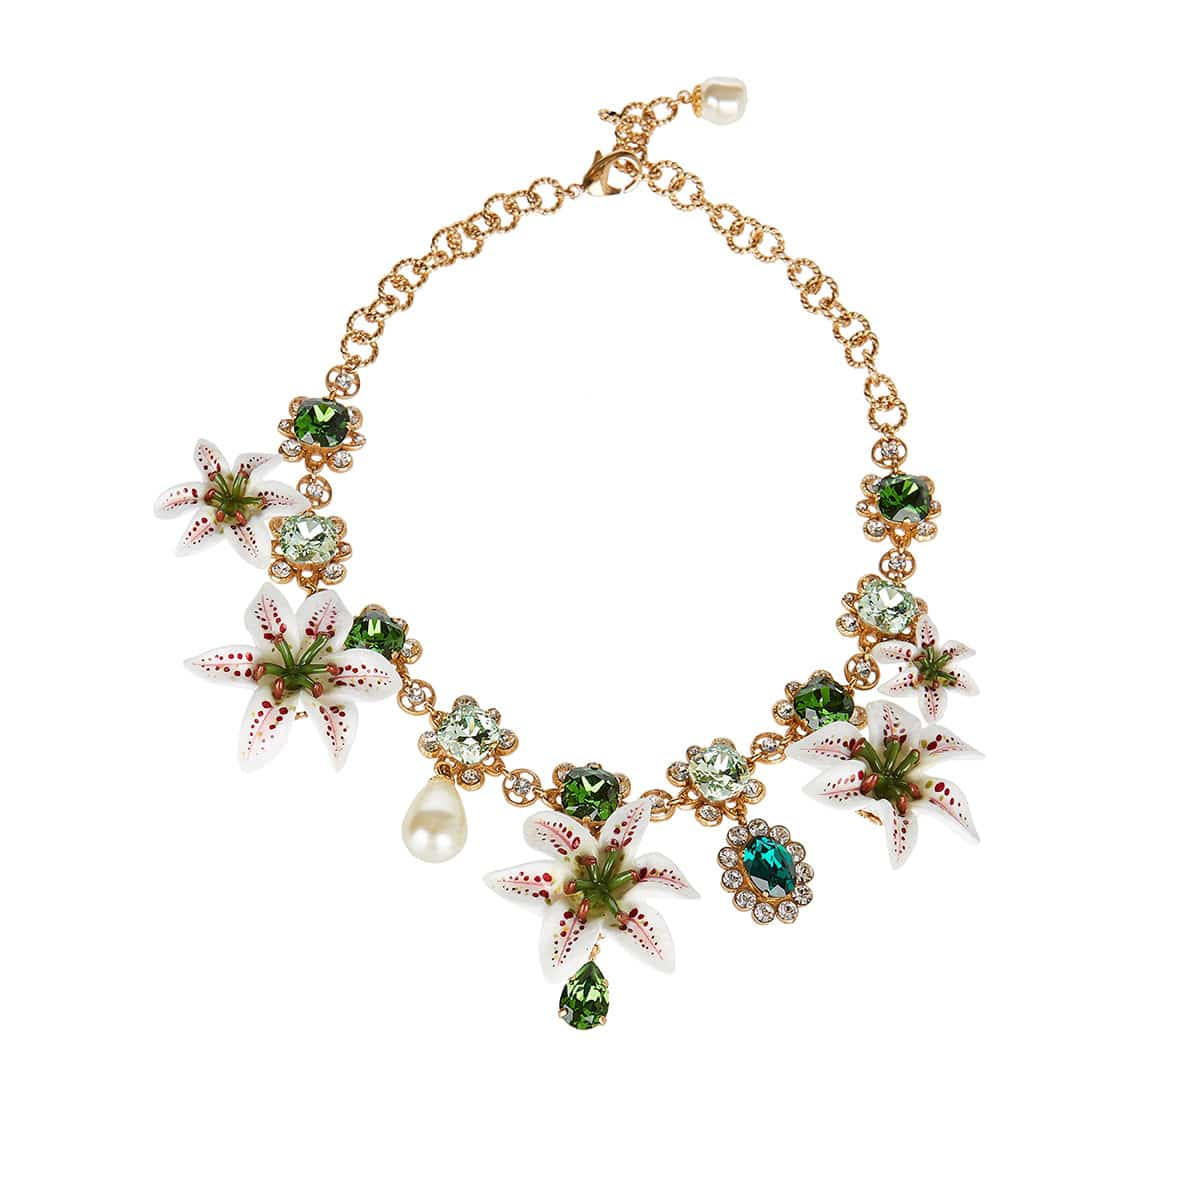 Lily and crystal-embellished chain necklace